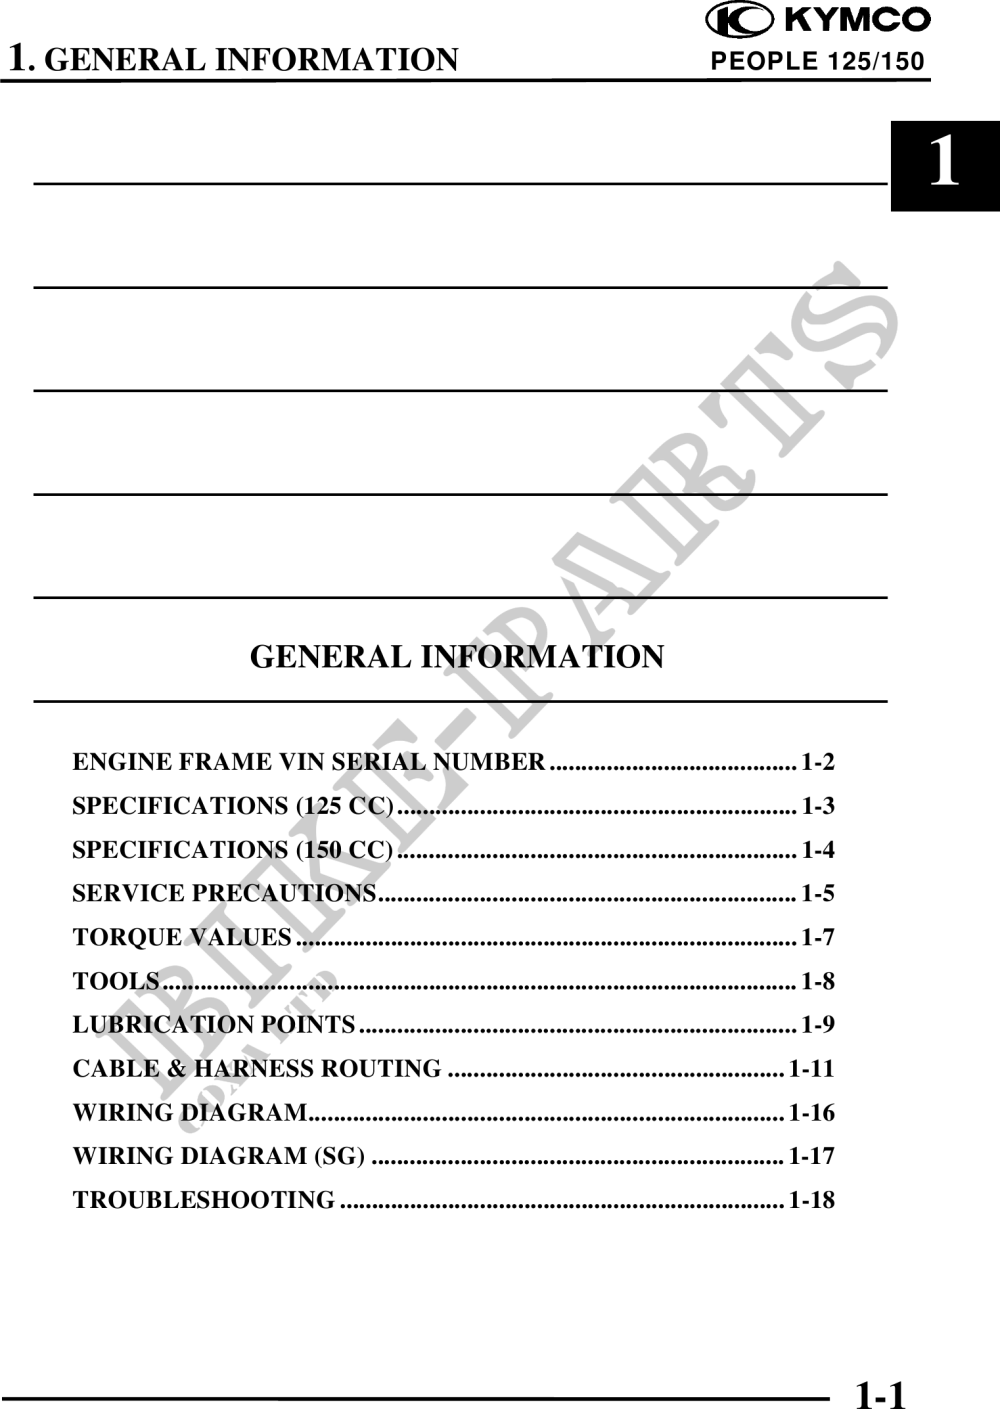 medium resolution of people 125 workshop manual page 1